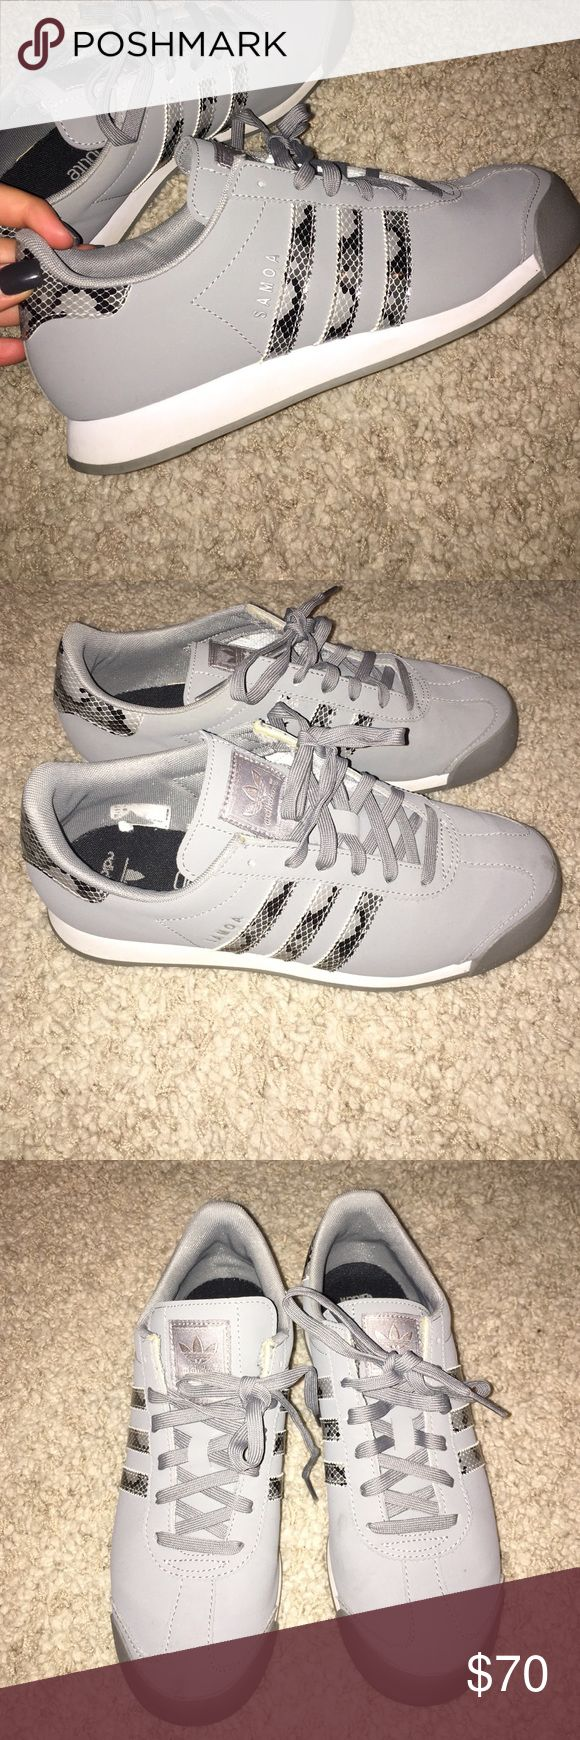 Adidas Soma Snakeskin Sneakers These shoes were worn multiple times and kept in very well ventilated areas. They are a men's 7 which is an equivalent to a women's 9 Adidas Shoes Athletic Shoes